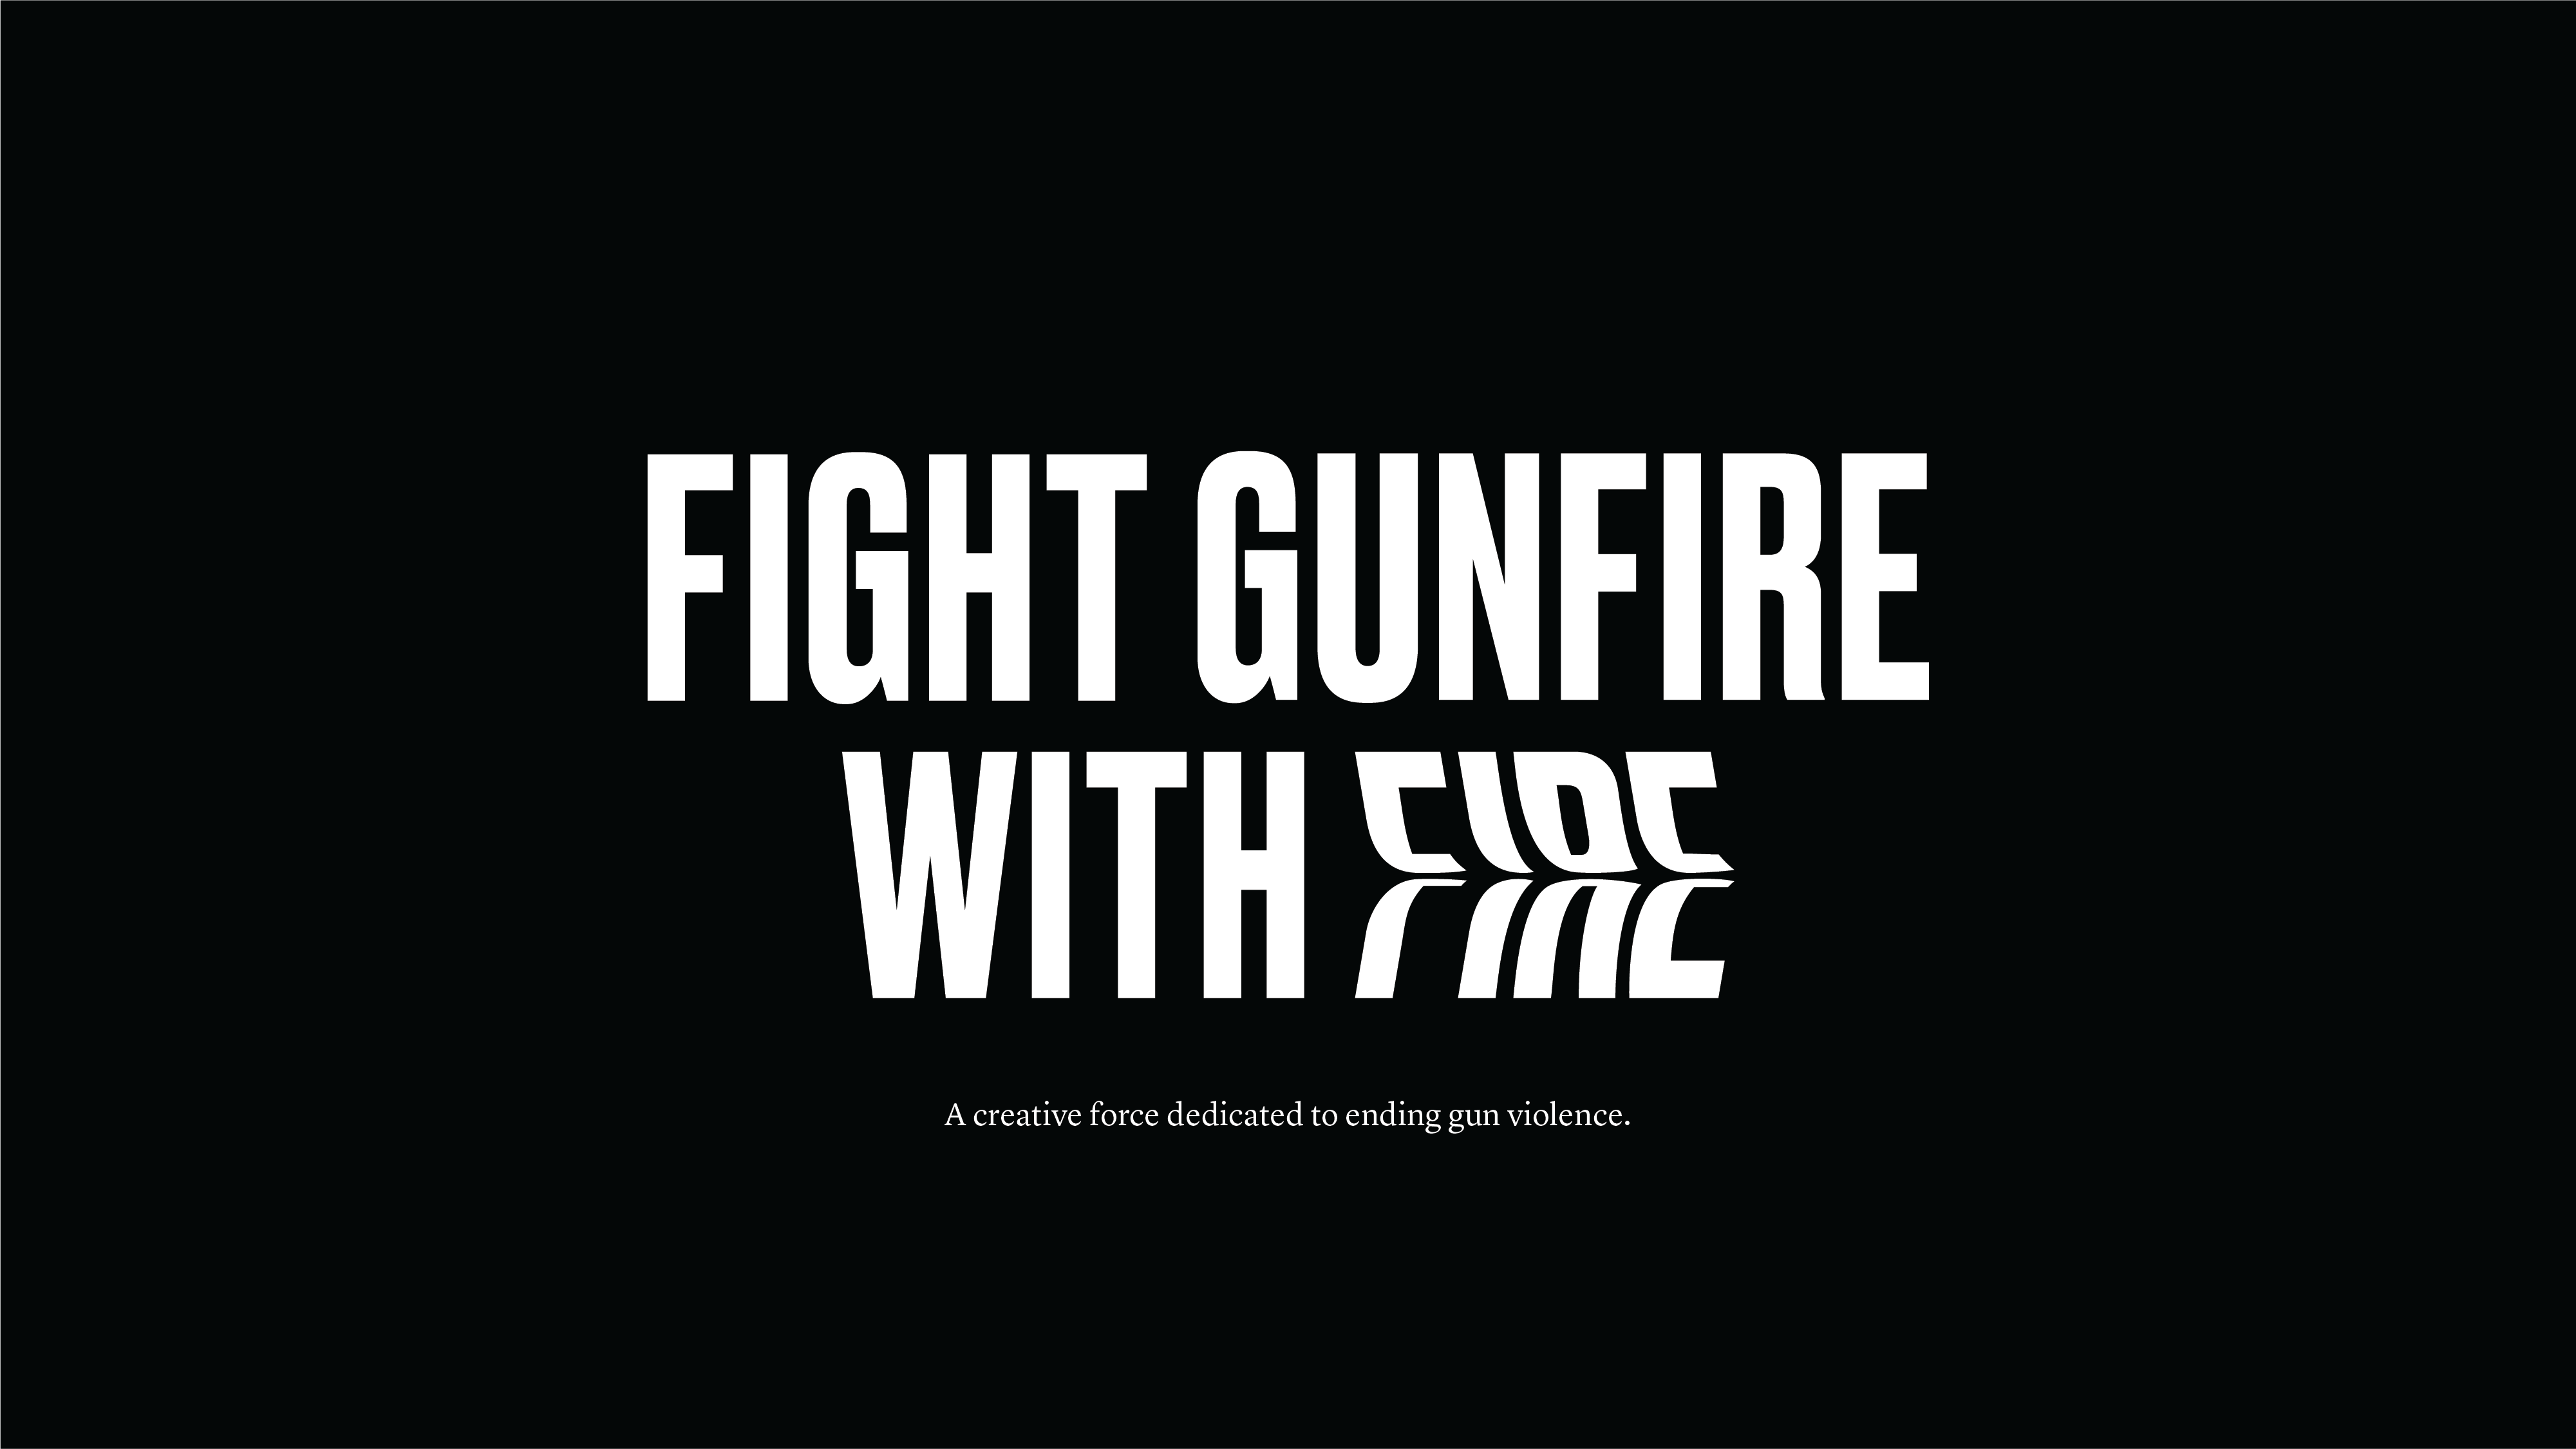 The One Club and MullenLowe Create Coalition to Support Students Fighting Gun Violence